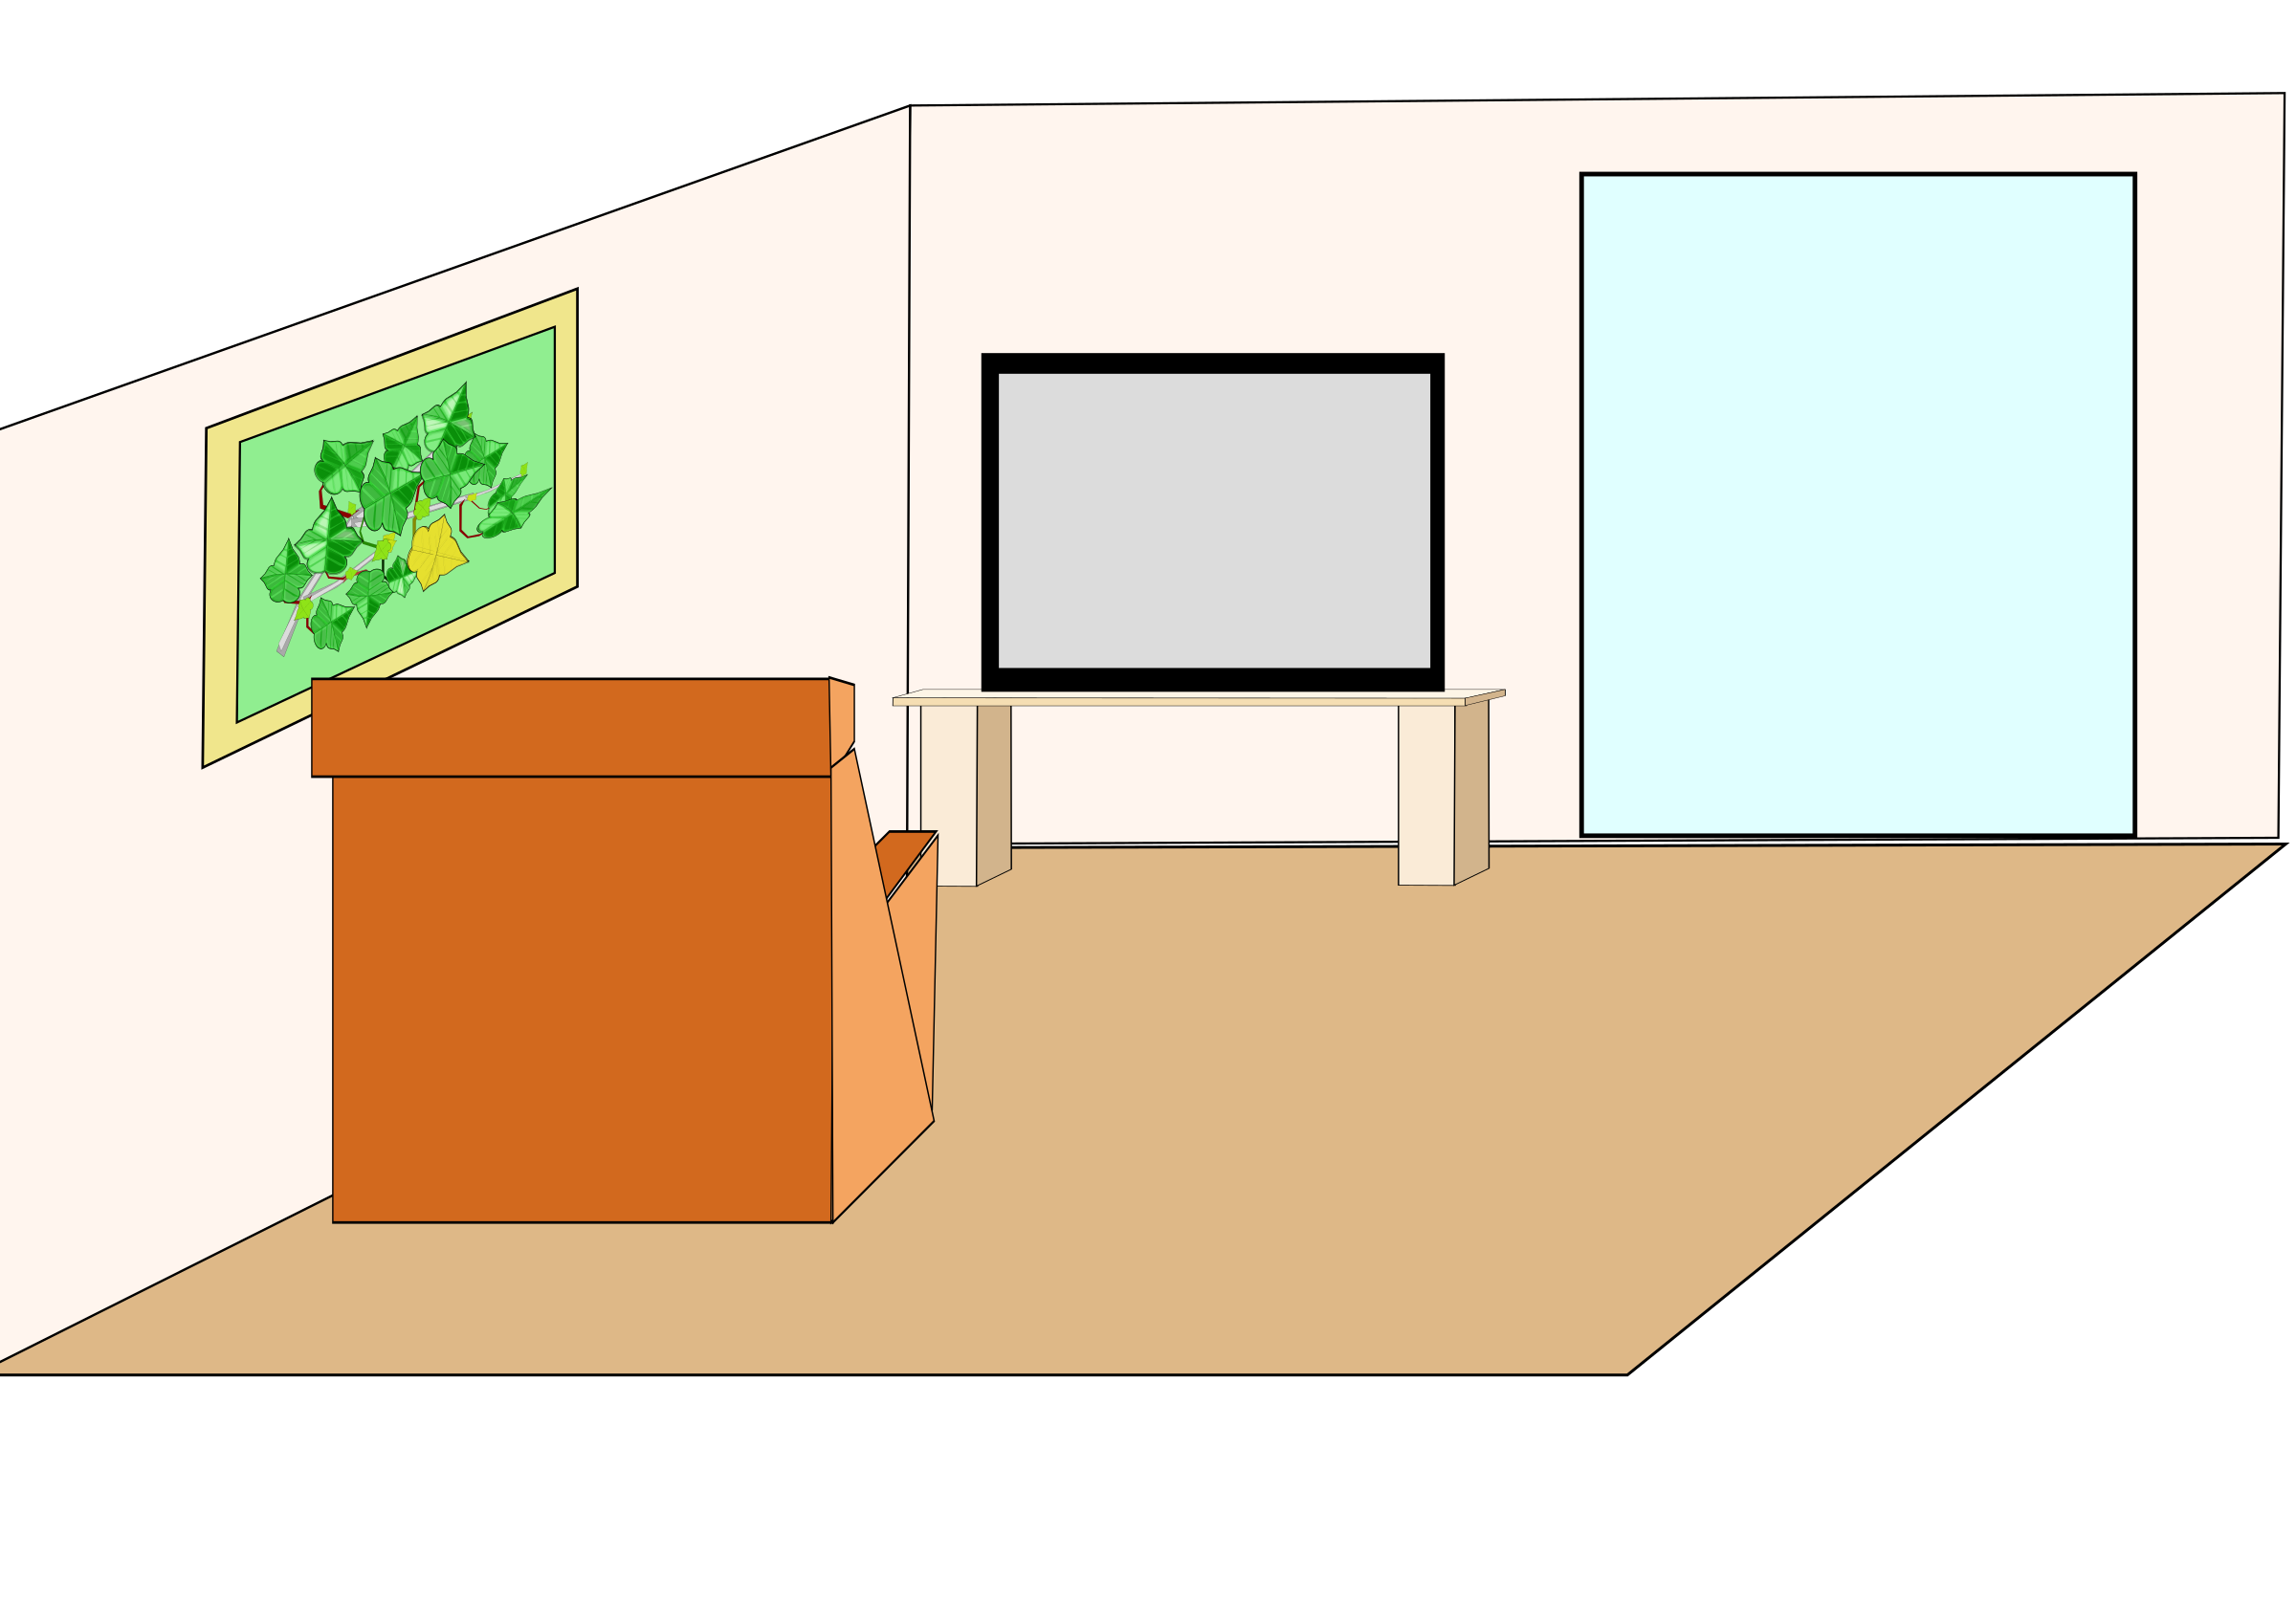 House Interior Clipart at GetDrawings.com | Free for personal use ... graphic download